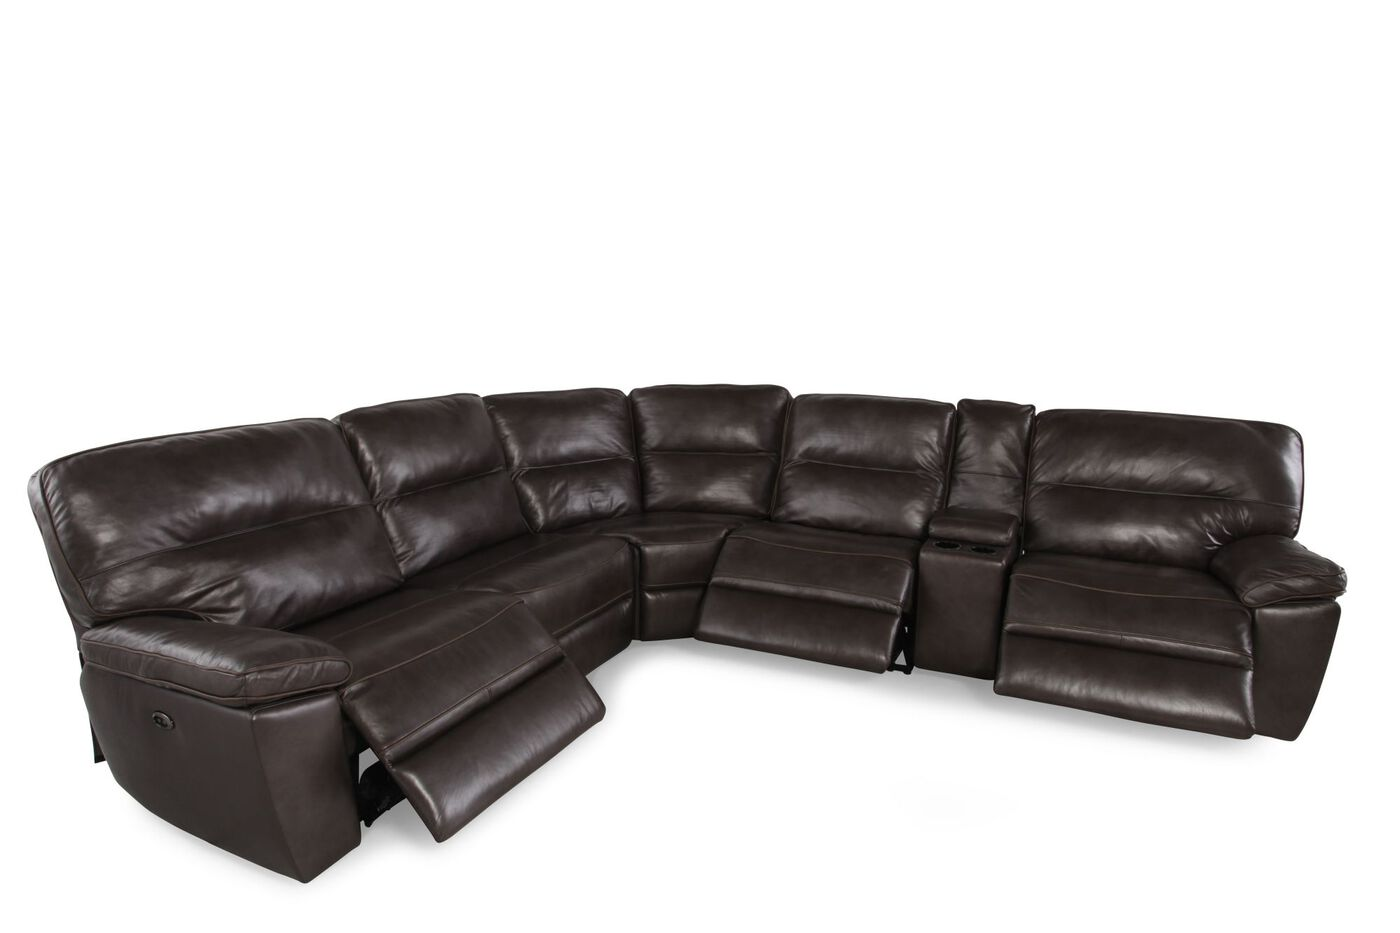 Six piece contemporary leather reclining sectional in dark for 8 piece leather sectional sofa